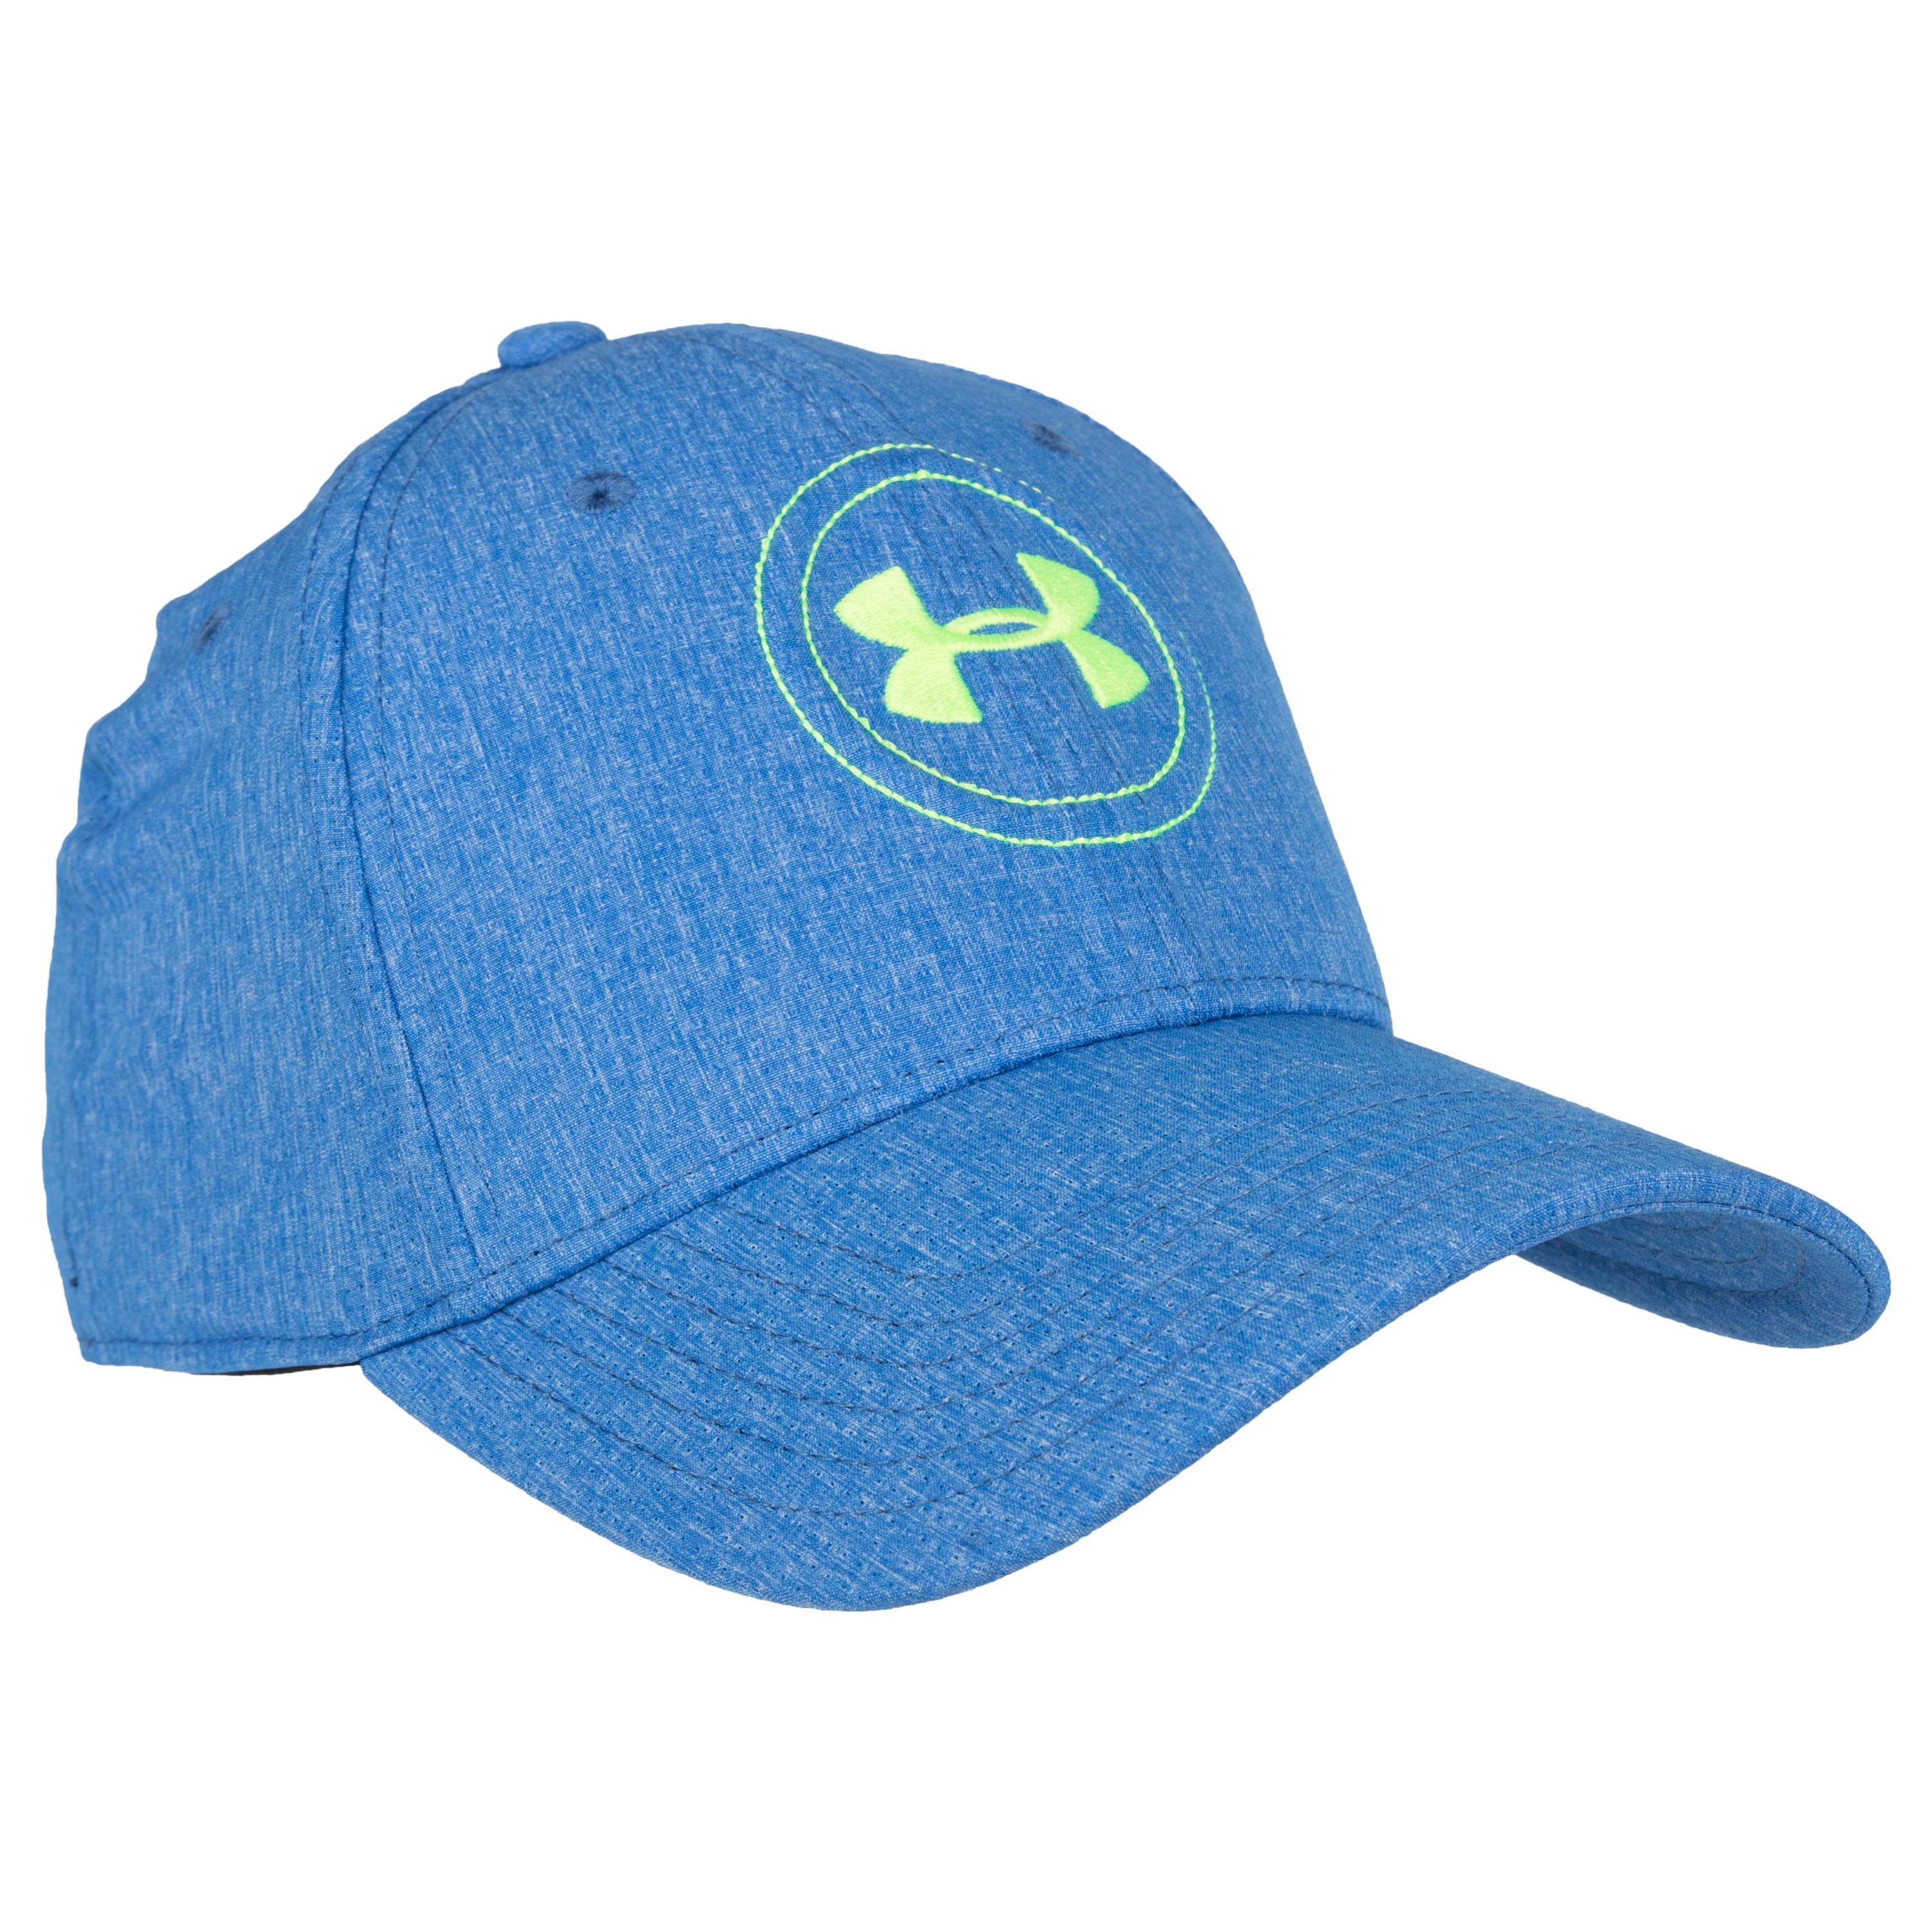 Under Armour Cap Tour 2.0 blau-grün